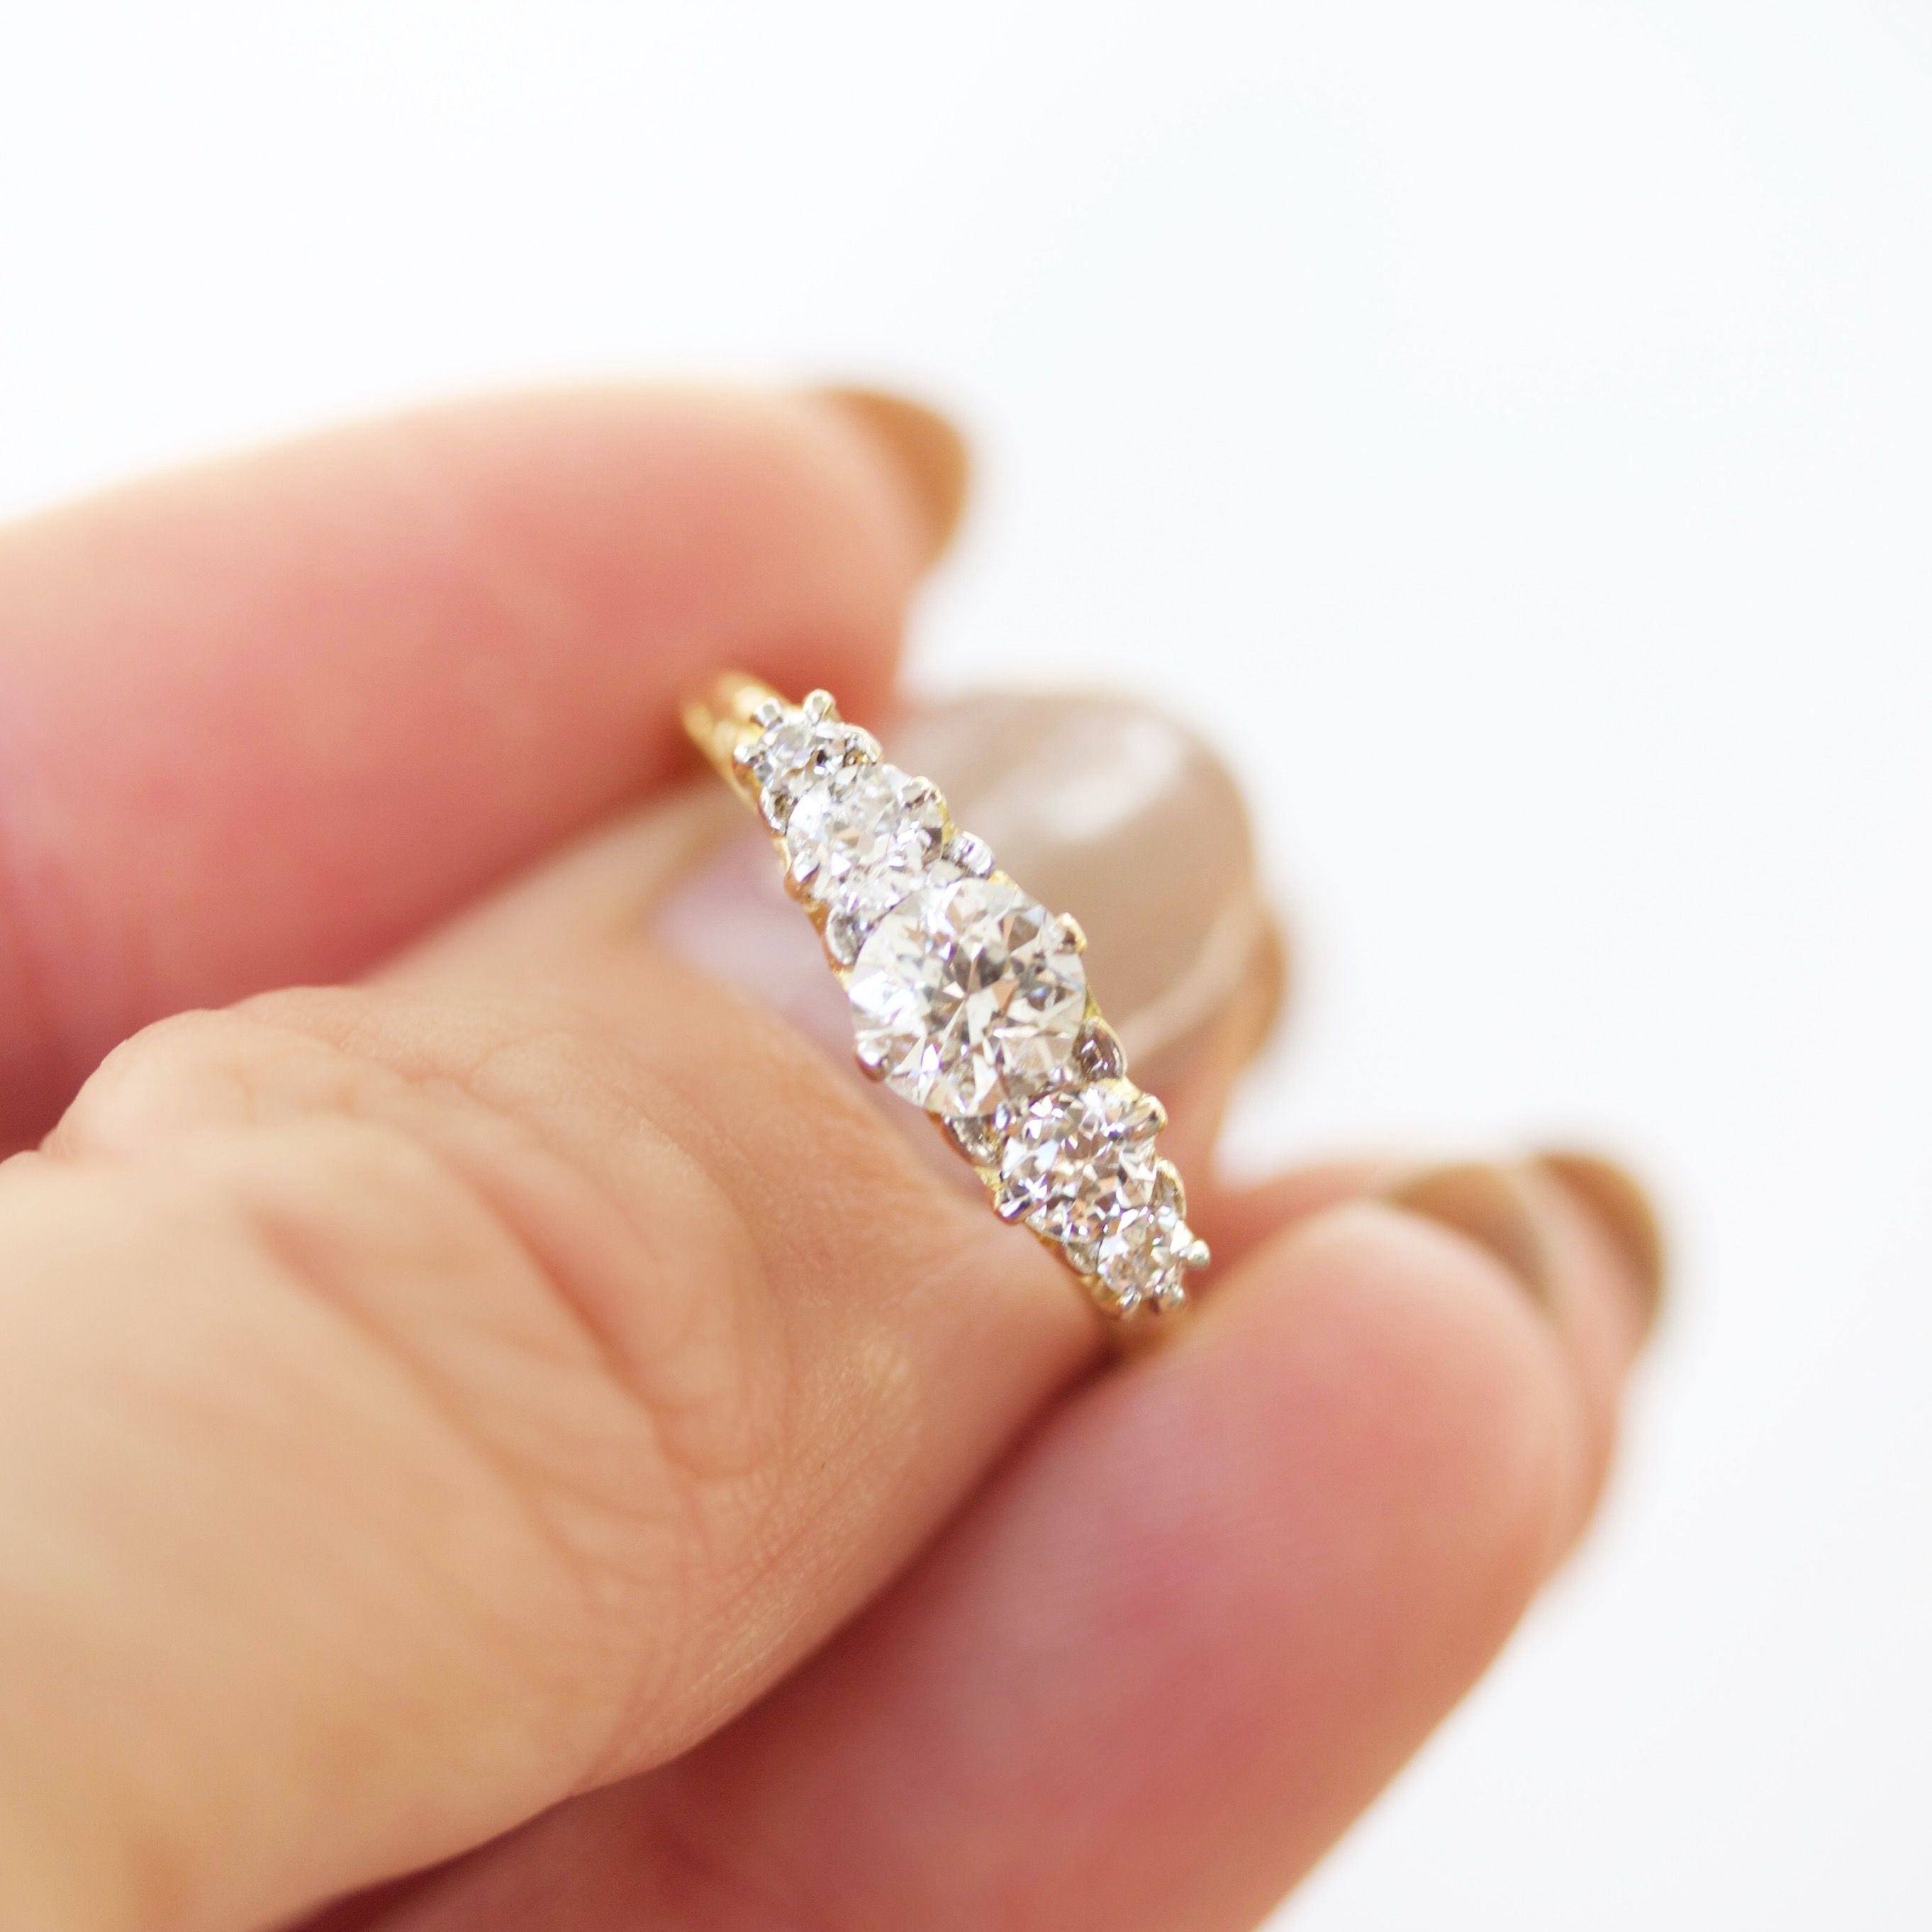 glamorous image com rings marquise engagement sylvie mq diamond butterfieldjewelers ring